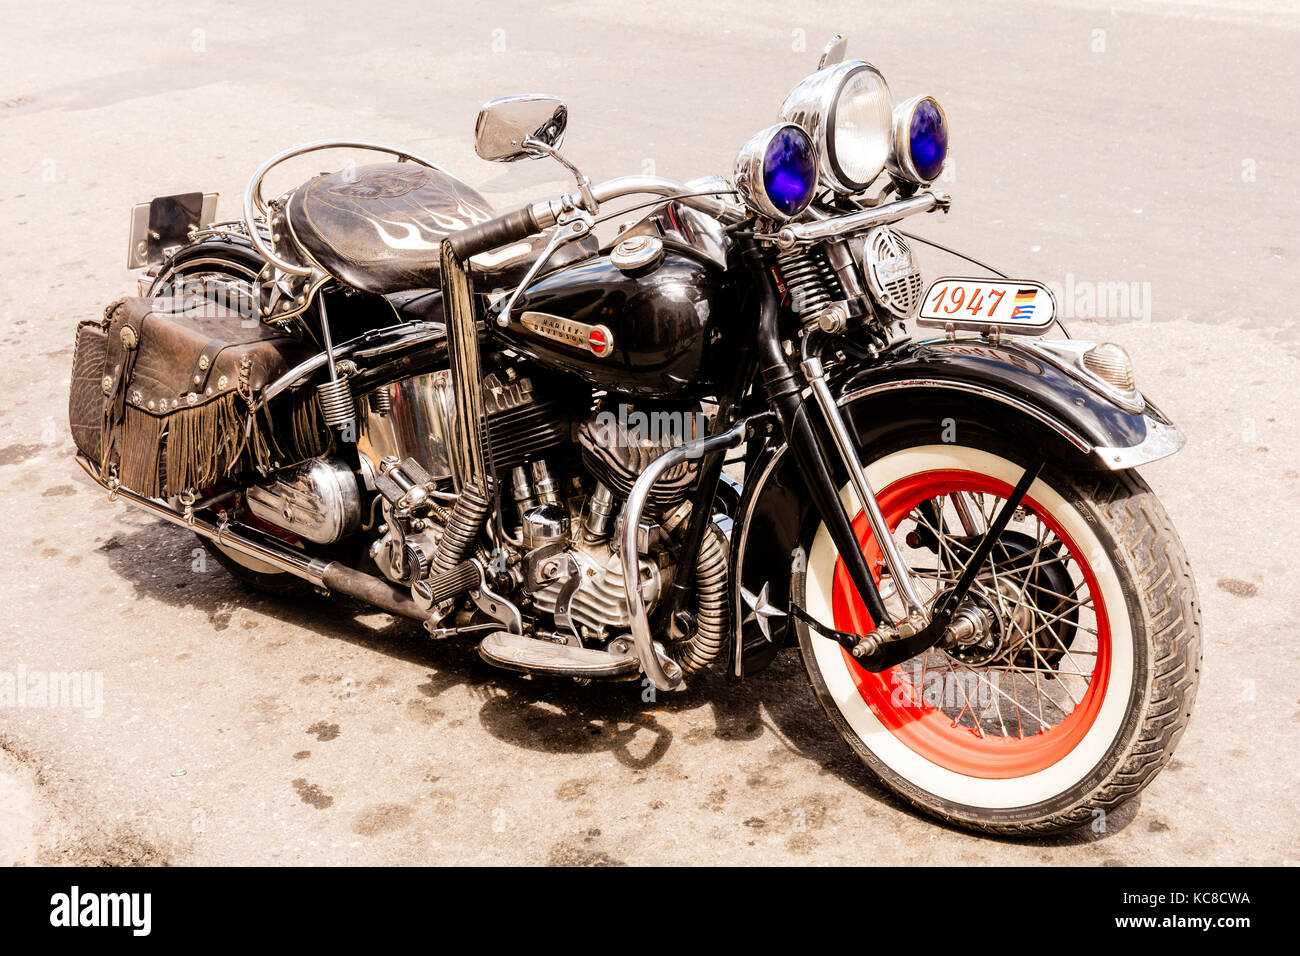 Harley Davidson: Hells Angels Stock Photos & Hells Angels Stock Images